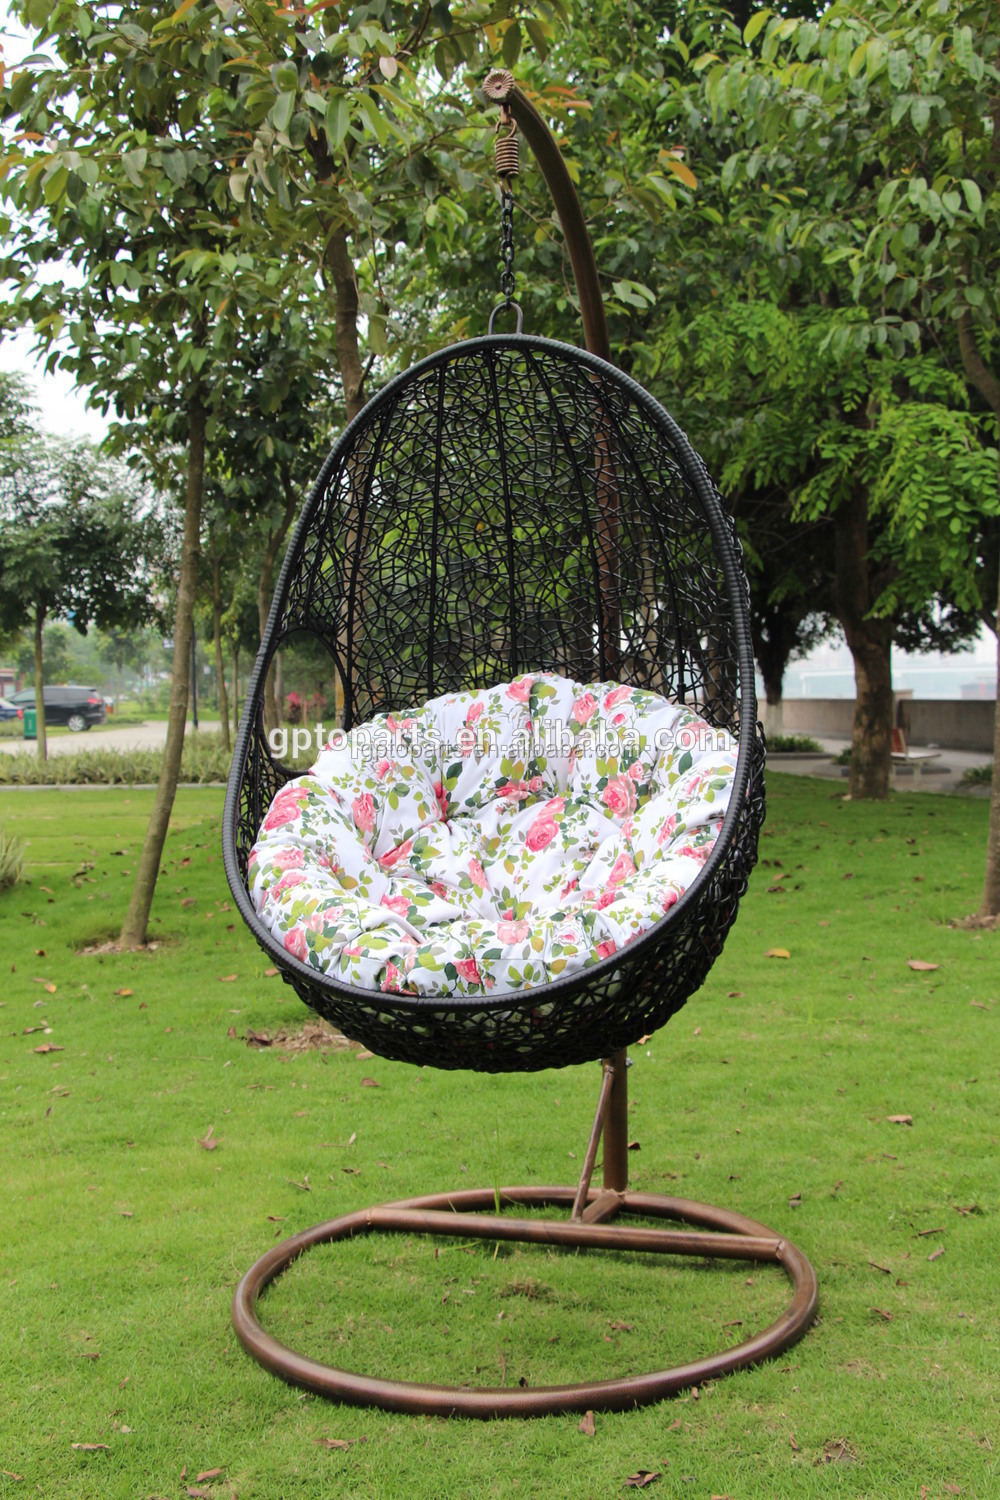 Egg Shaped Rattan Balcony Swing Chair For Garden Or Baby Swing High Chair Buy Egg Shaped Rattan Balcony Swing Chair For Garden Or Baby Used Chair